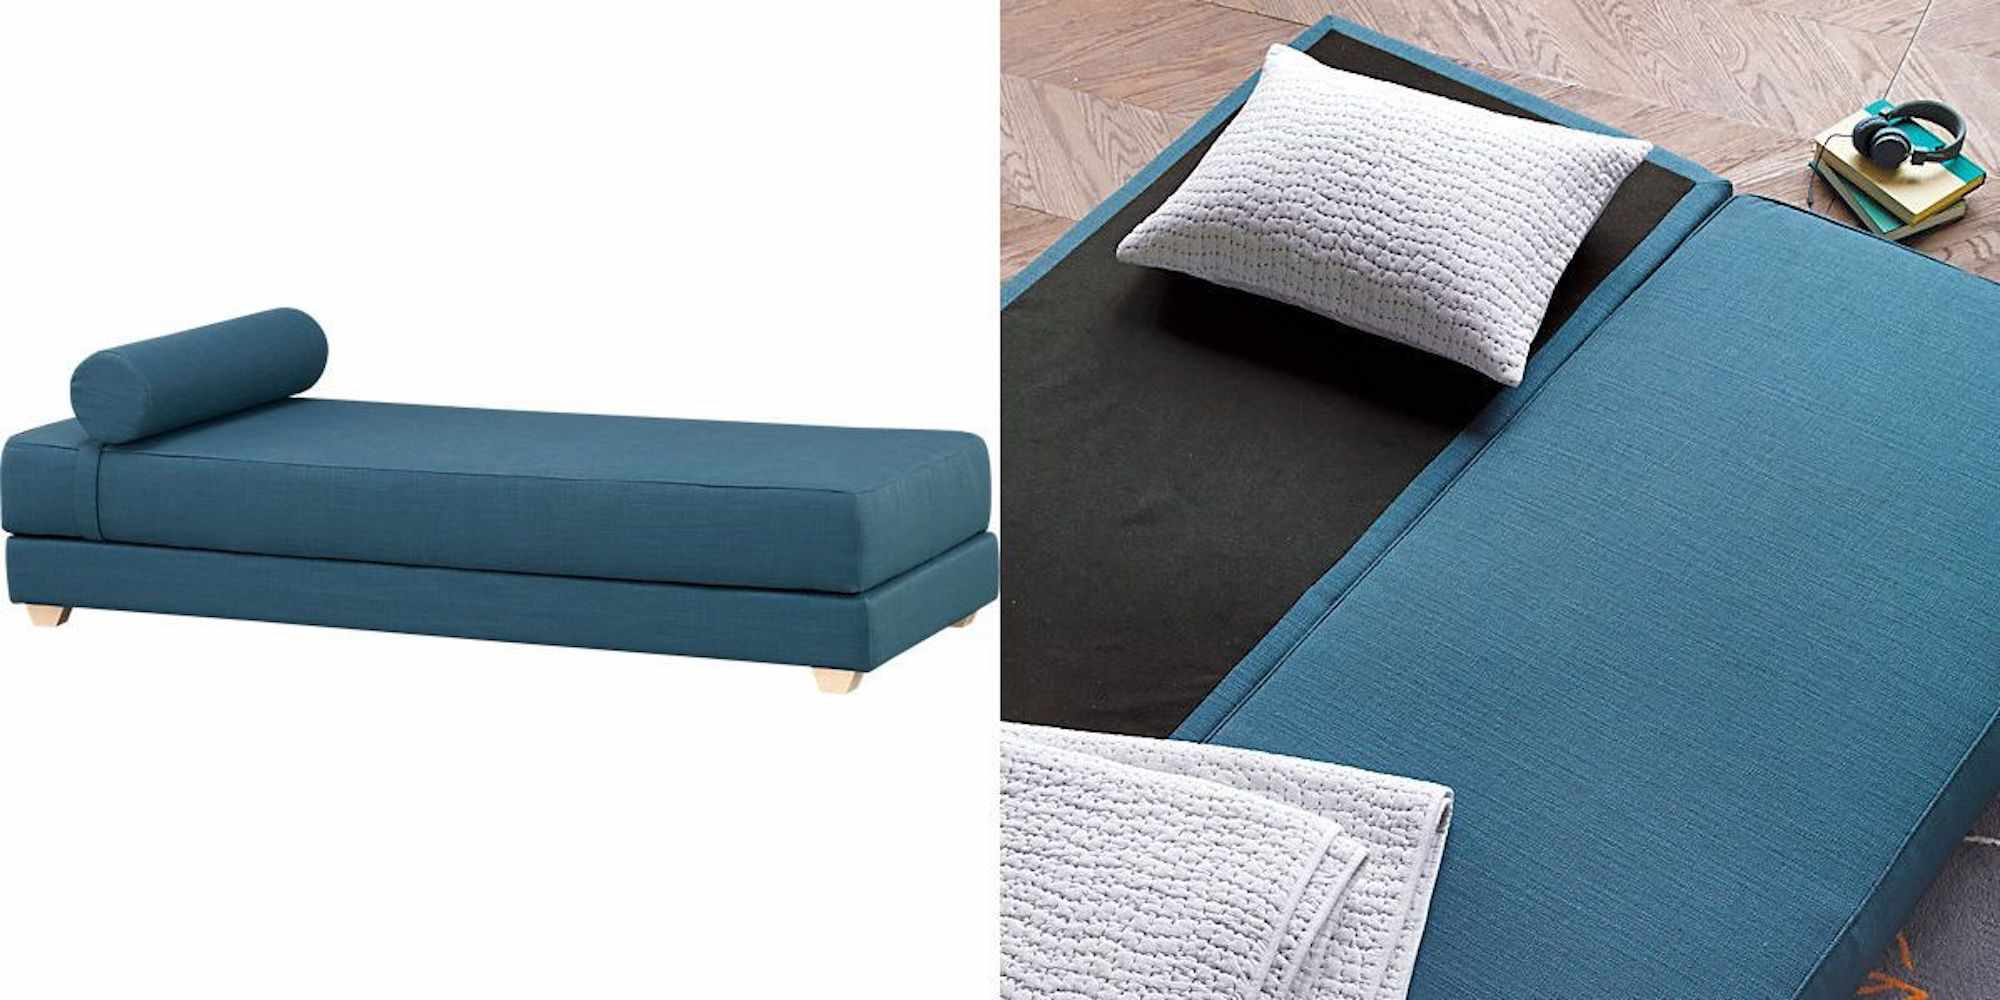 Blue daybed folded up and folded out